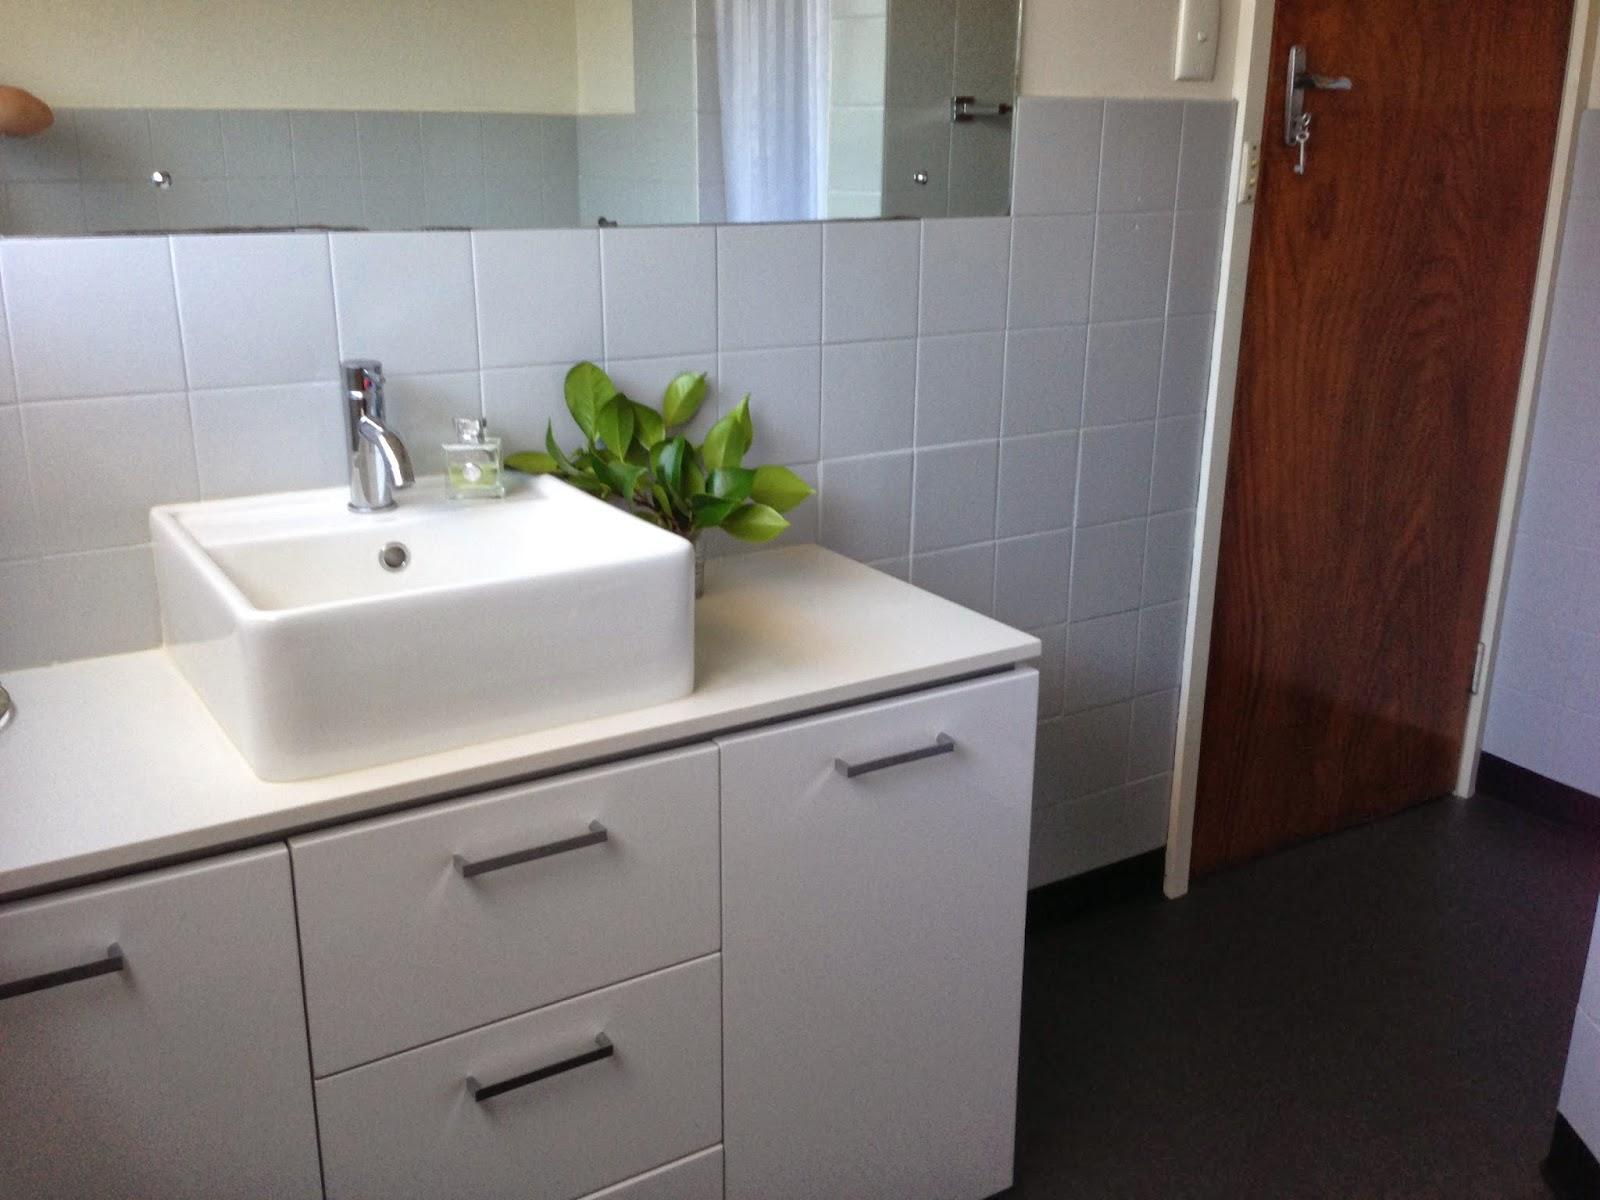 Bunnings Bathrooms Vanity Hello From Tassie Bathroom Makeover On The Cheap But